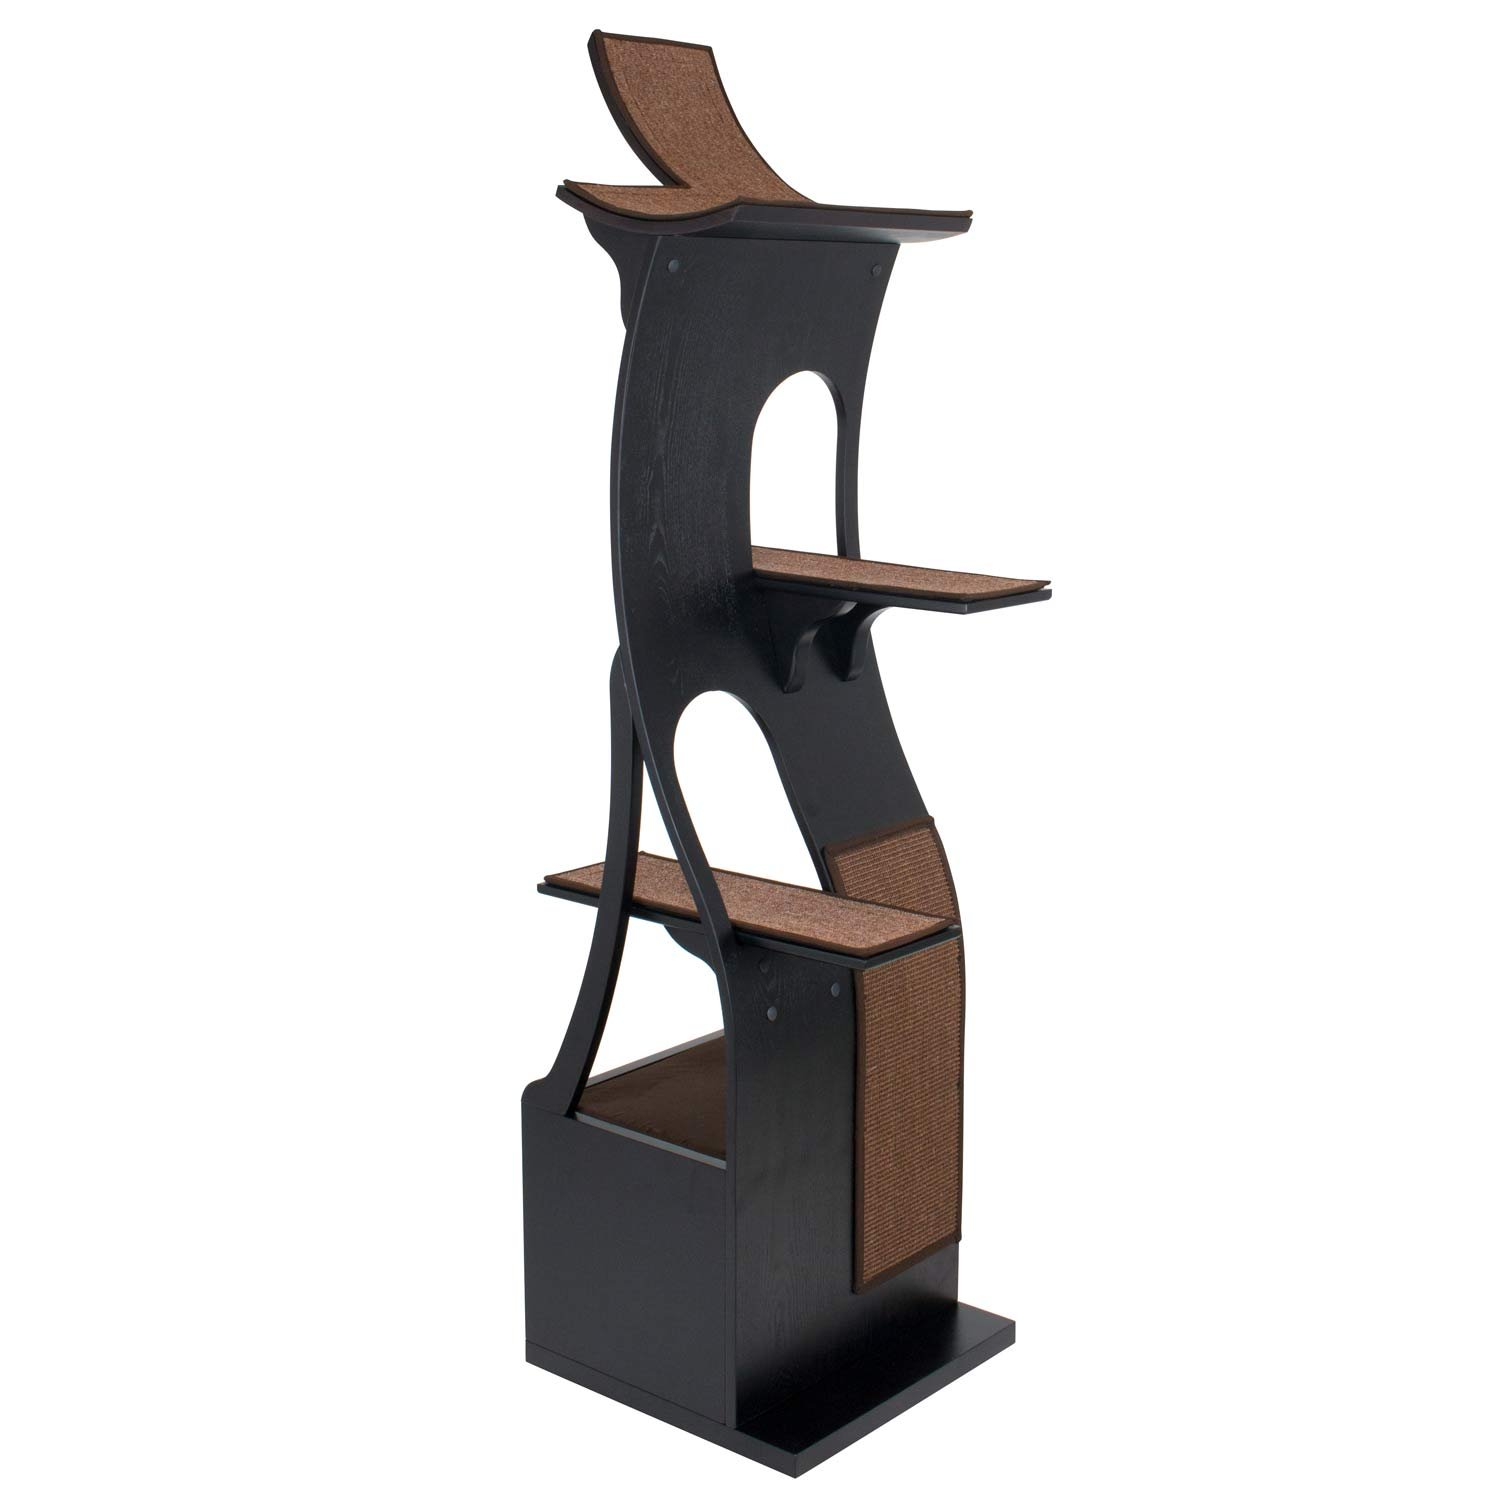 FrontPet Willow Cat Tree Tower Espresso / 20L x 20W x 69H / Cat Tower / Cat Scratching Tower / Cat Activity Tower / Modern Cat Tower / Modern Cat Tree / Unique Cat Furniture / Cat Furniture Modern